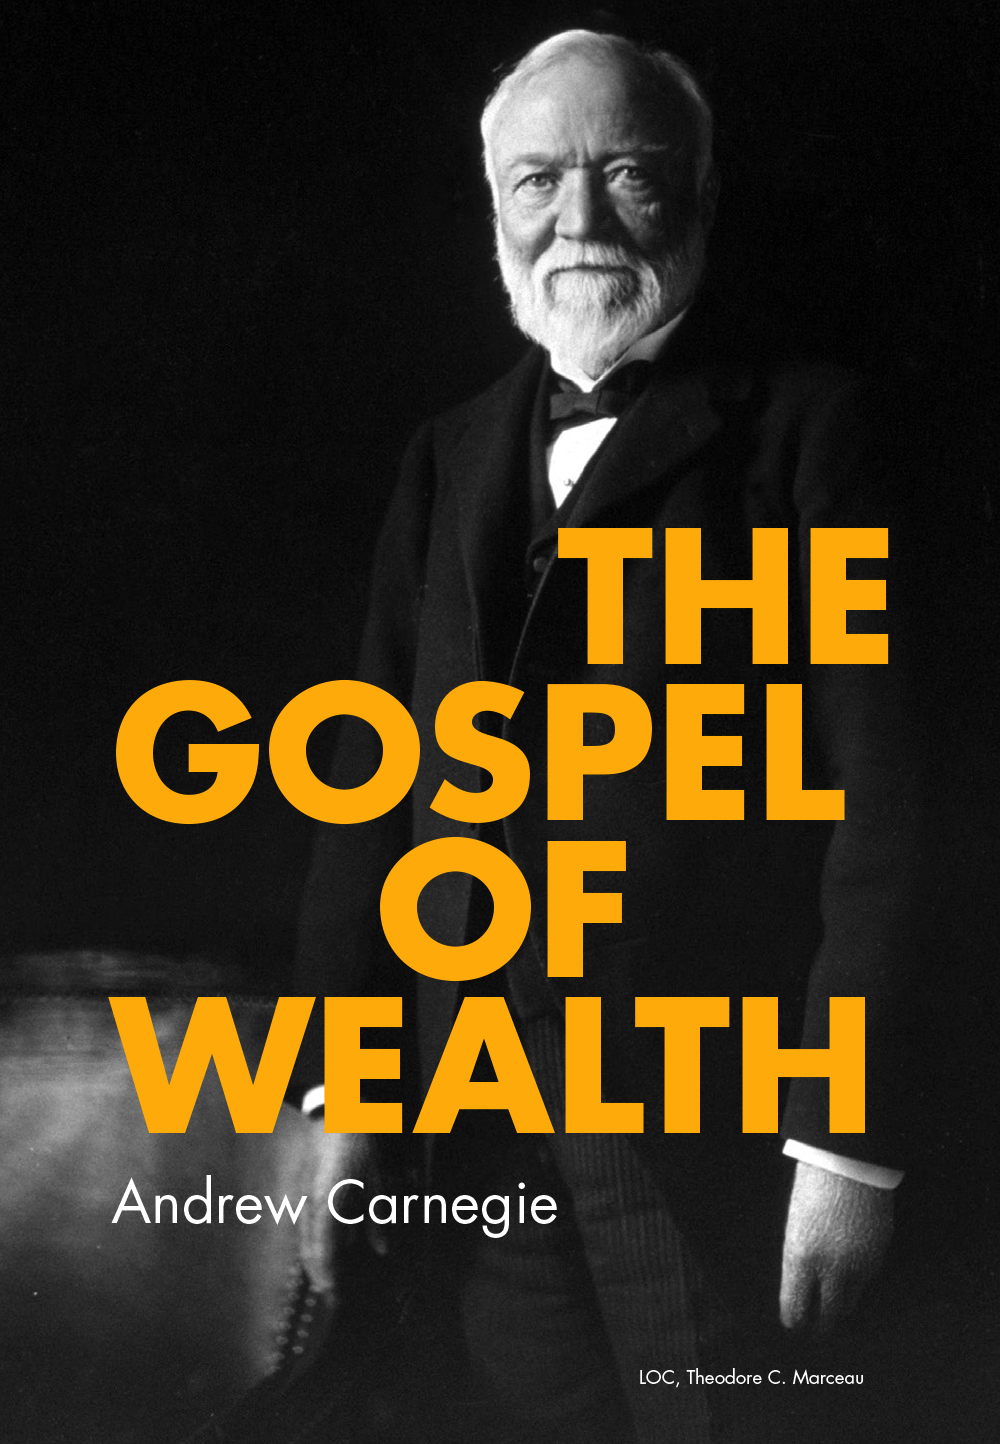 andrew carnegie philanthropy essay Words of wisdom from american philanthropist andrew carnegie focusing on carnegie's most famous essay, the gospel of wealth, this book of his writings.